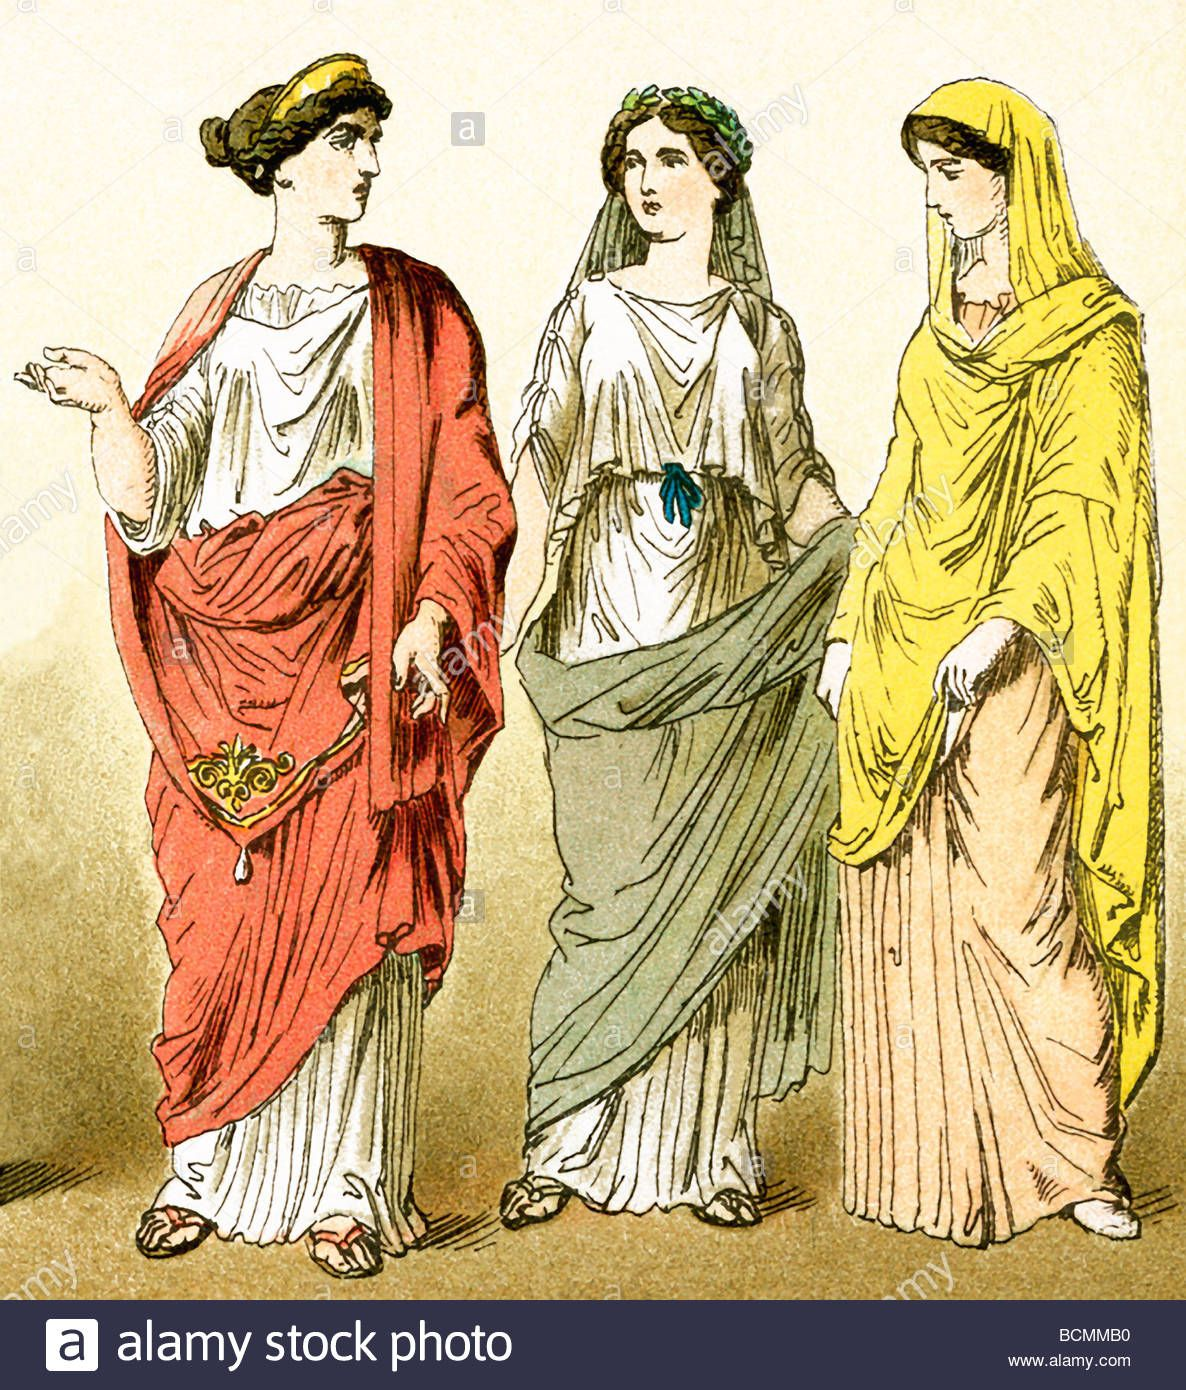 6b80f3c3c78 Image result for ancient roman women clothing museum